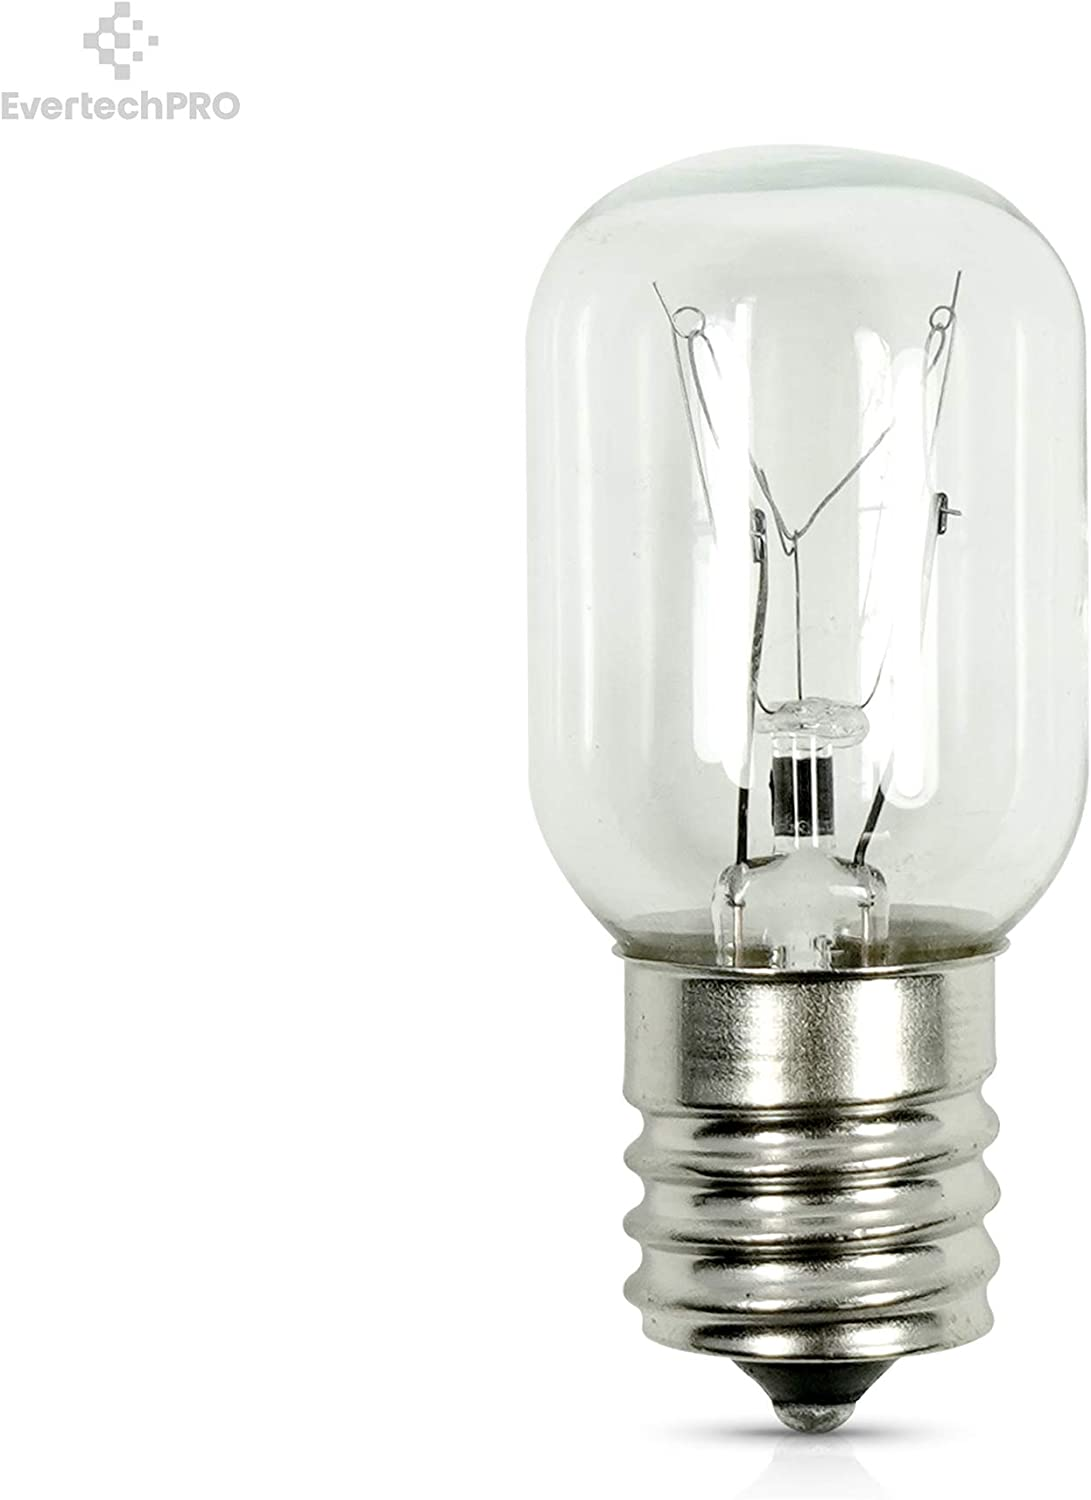 EvertechPRO Refrigerator Incadescent Lamp 40 W Replacement for GE WB25X10030